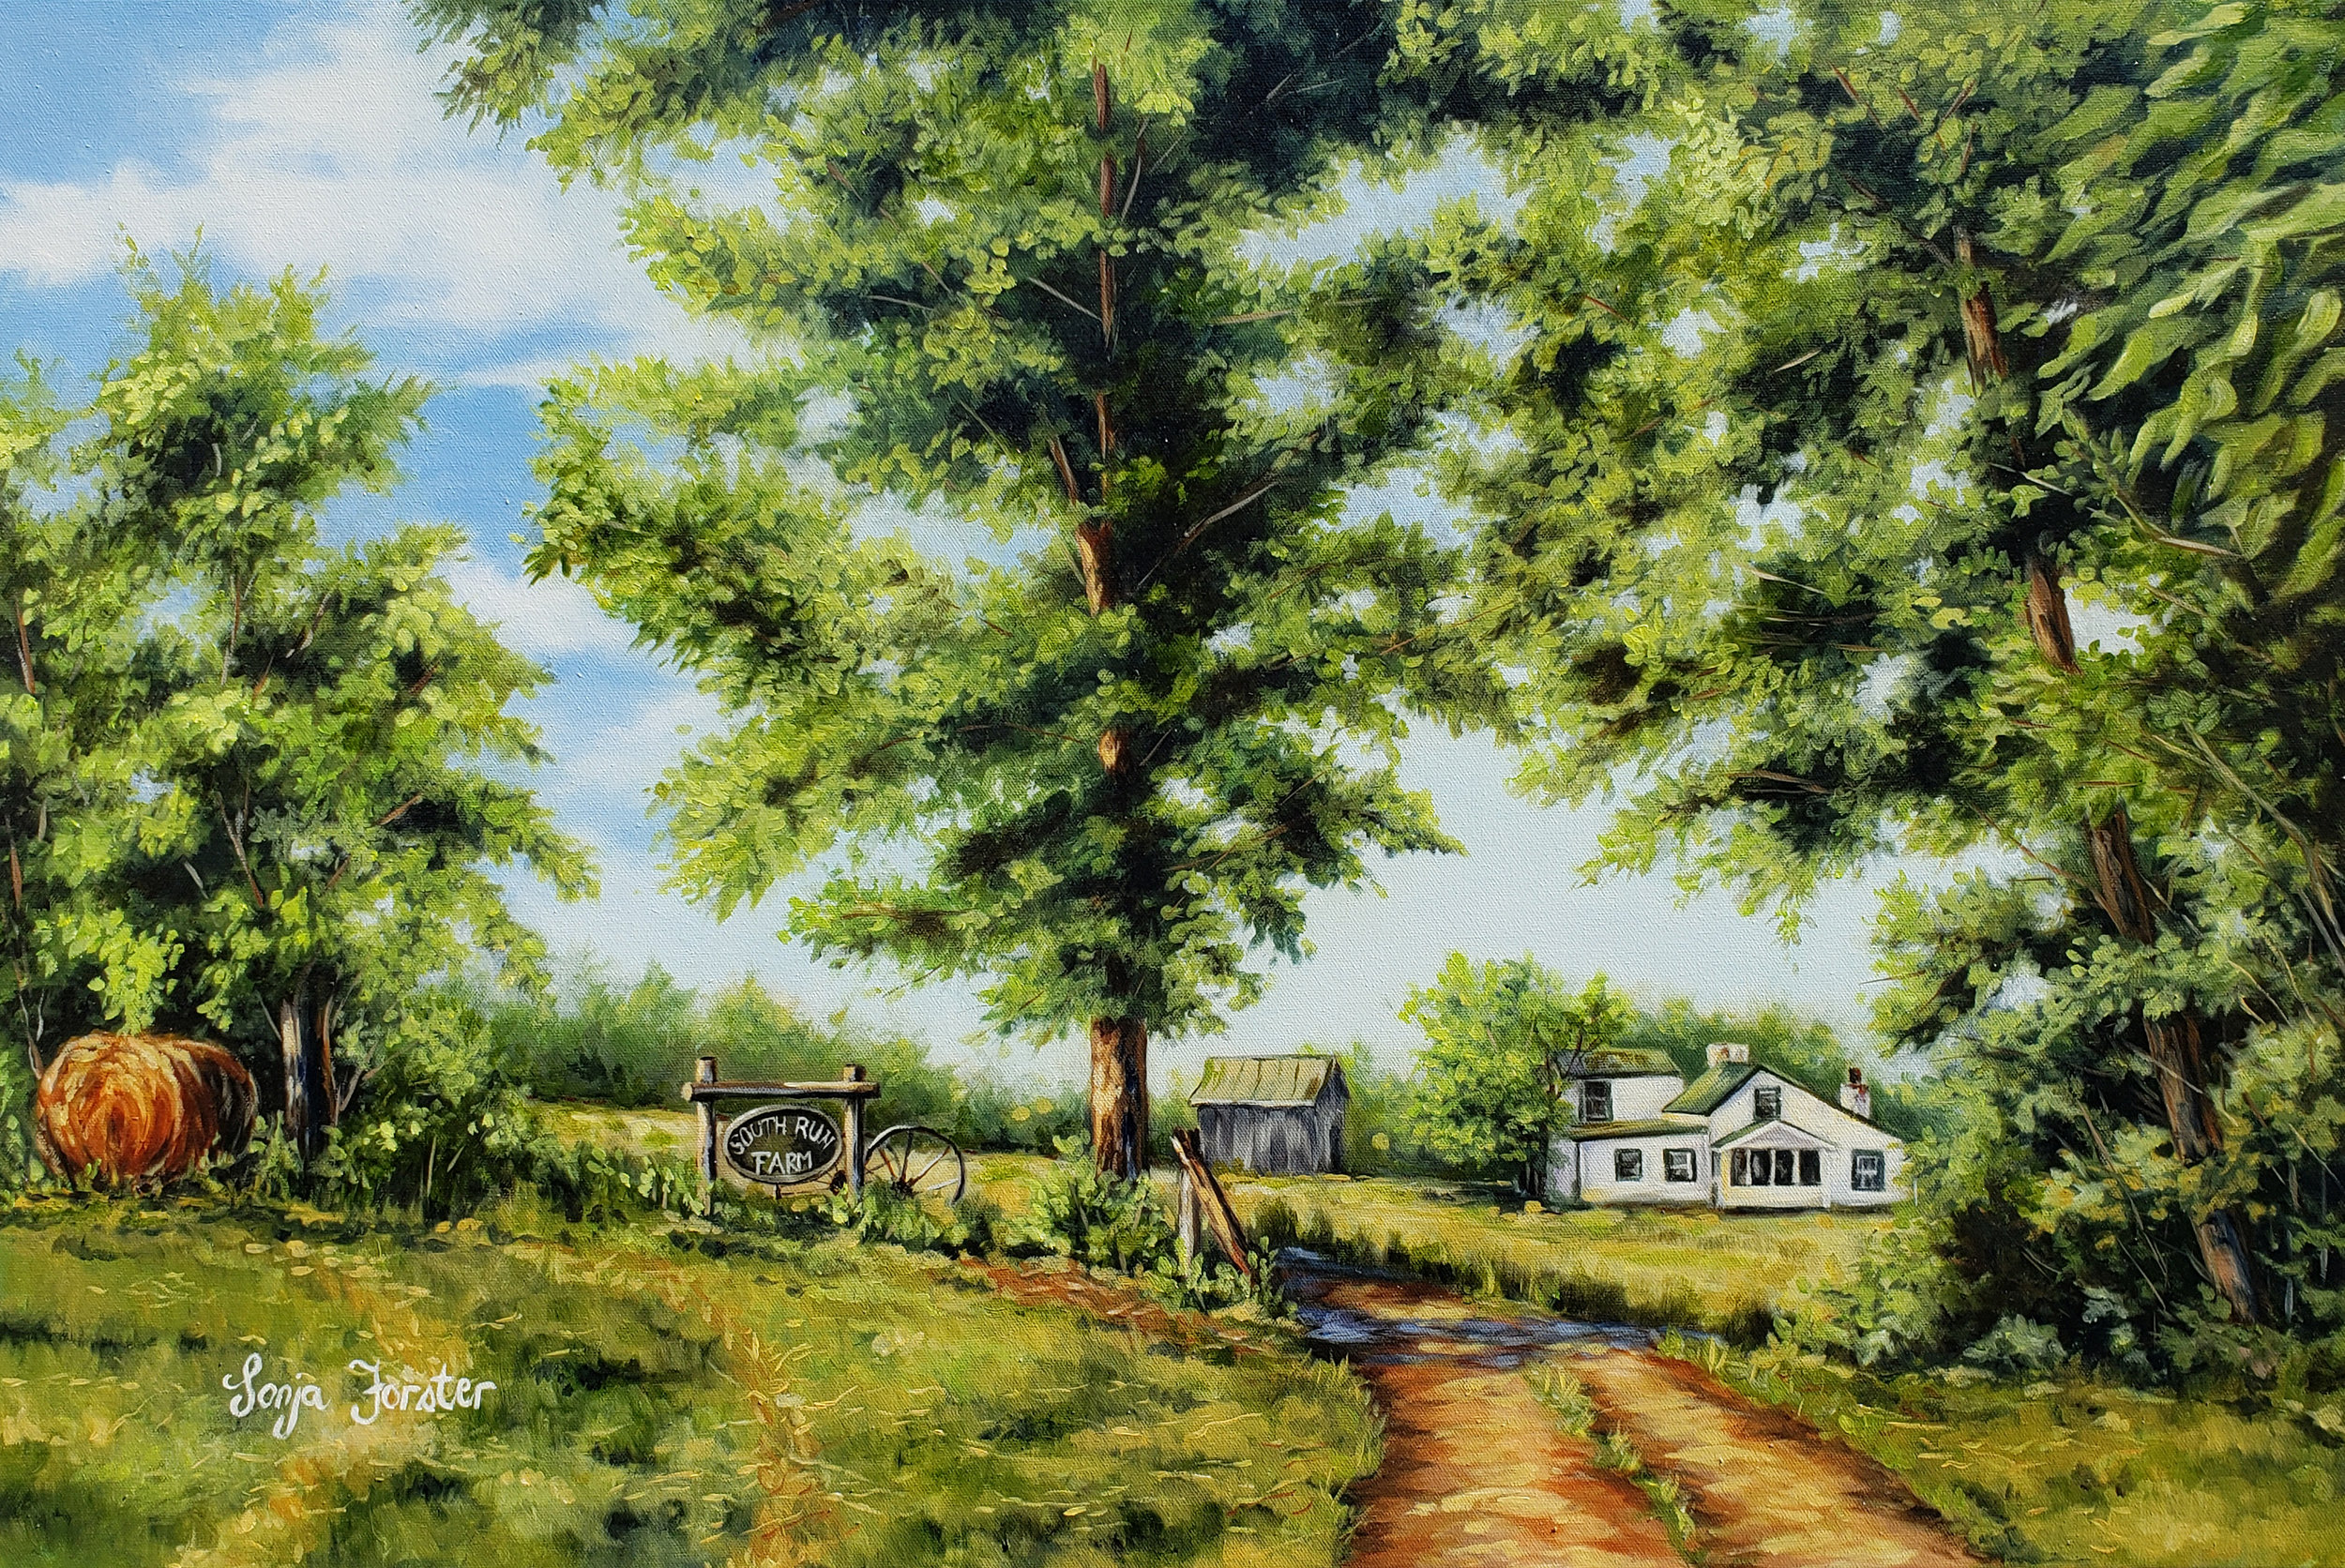 Virginia Family Farm - Oil on canvas | 18